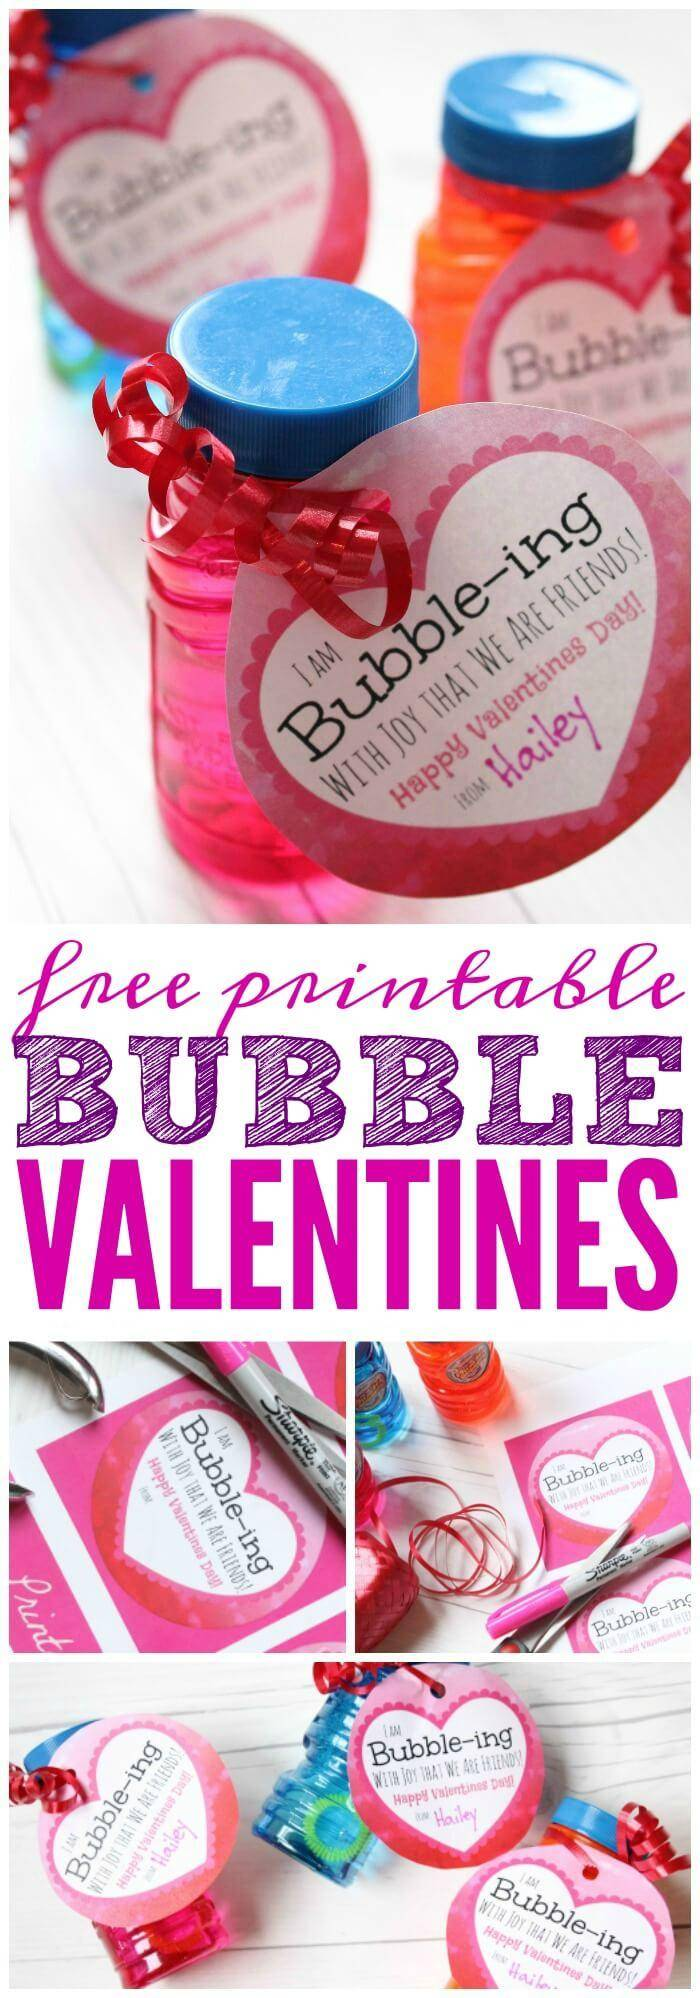 bubble hit valentine